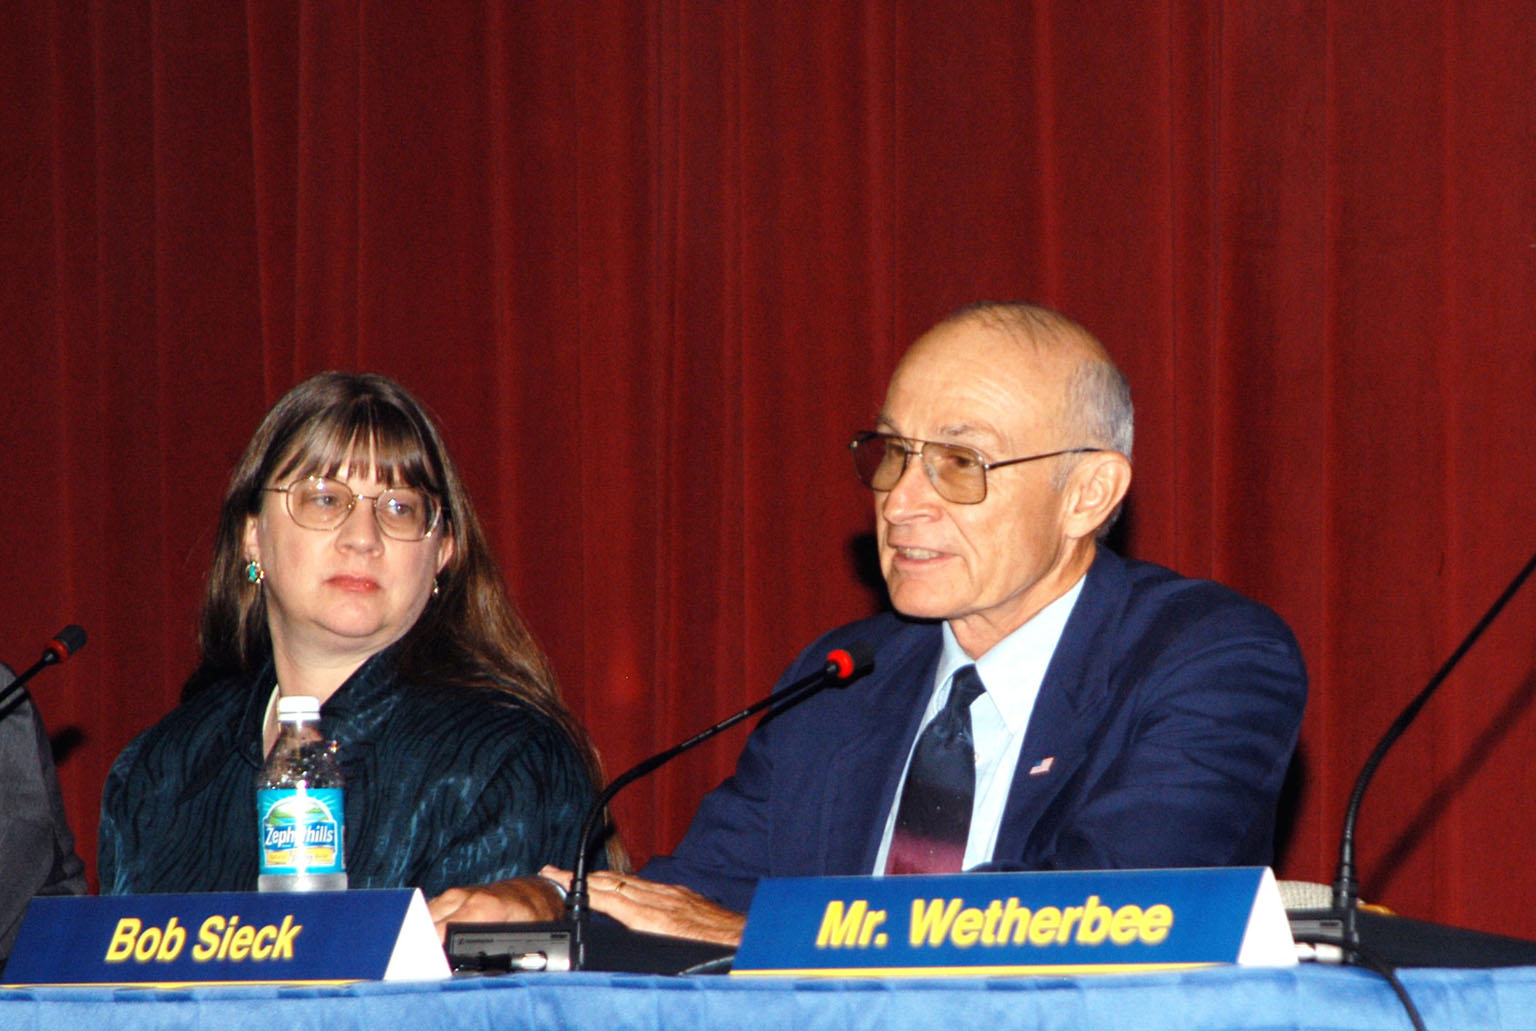 KENNEDY SPACE CENTER, FLA. -- Lynn Cline (left), Deputy Associate Administrator for Space Flight, looks on as Bob Sieck, former Director of Space Shuttle Processing at KSC, answers a question posed by a member of the audience attending the Culture Change Process All Hands Meeting in the Training Auditorium. The purpose of the meeting was for employees to gain further insight into the Agency?s Vision for Space Exploration and the direction cultural change will take at KSC in order to assume its role within this vision. Other panel members were James W. Kennedy, KSC director; Jim Jennings, Deputy Associate Administrator for Institutions and Asset Management; and Jim Wetherbee, astronaut and Technical Assistant to the Director of Safety and Mission Assurance at Johnson Space Center.